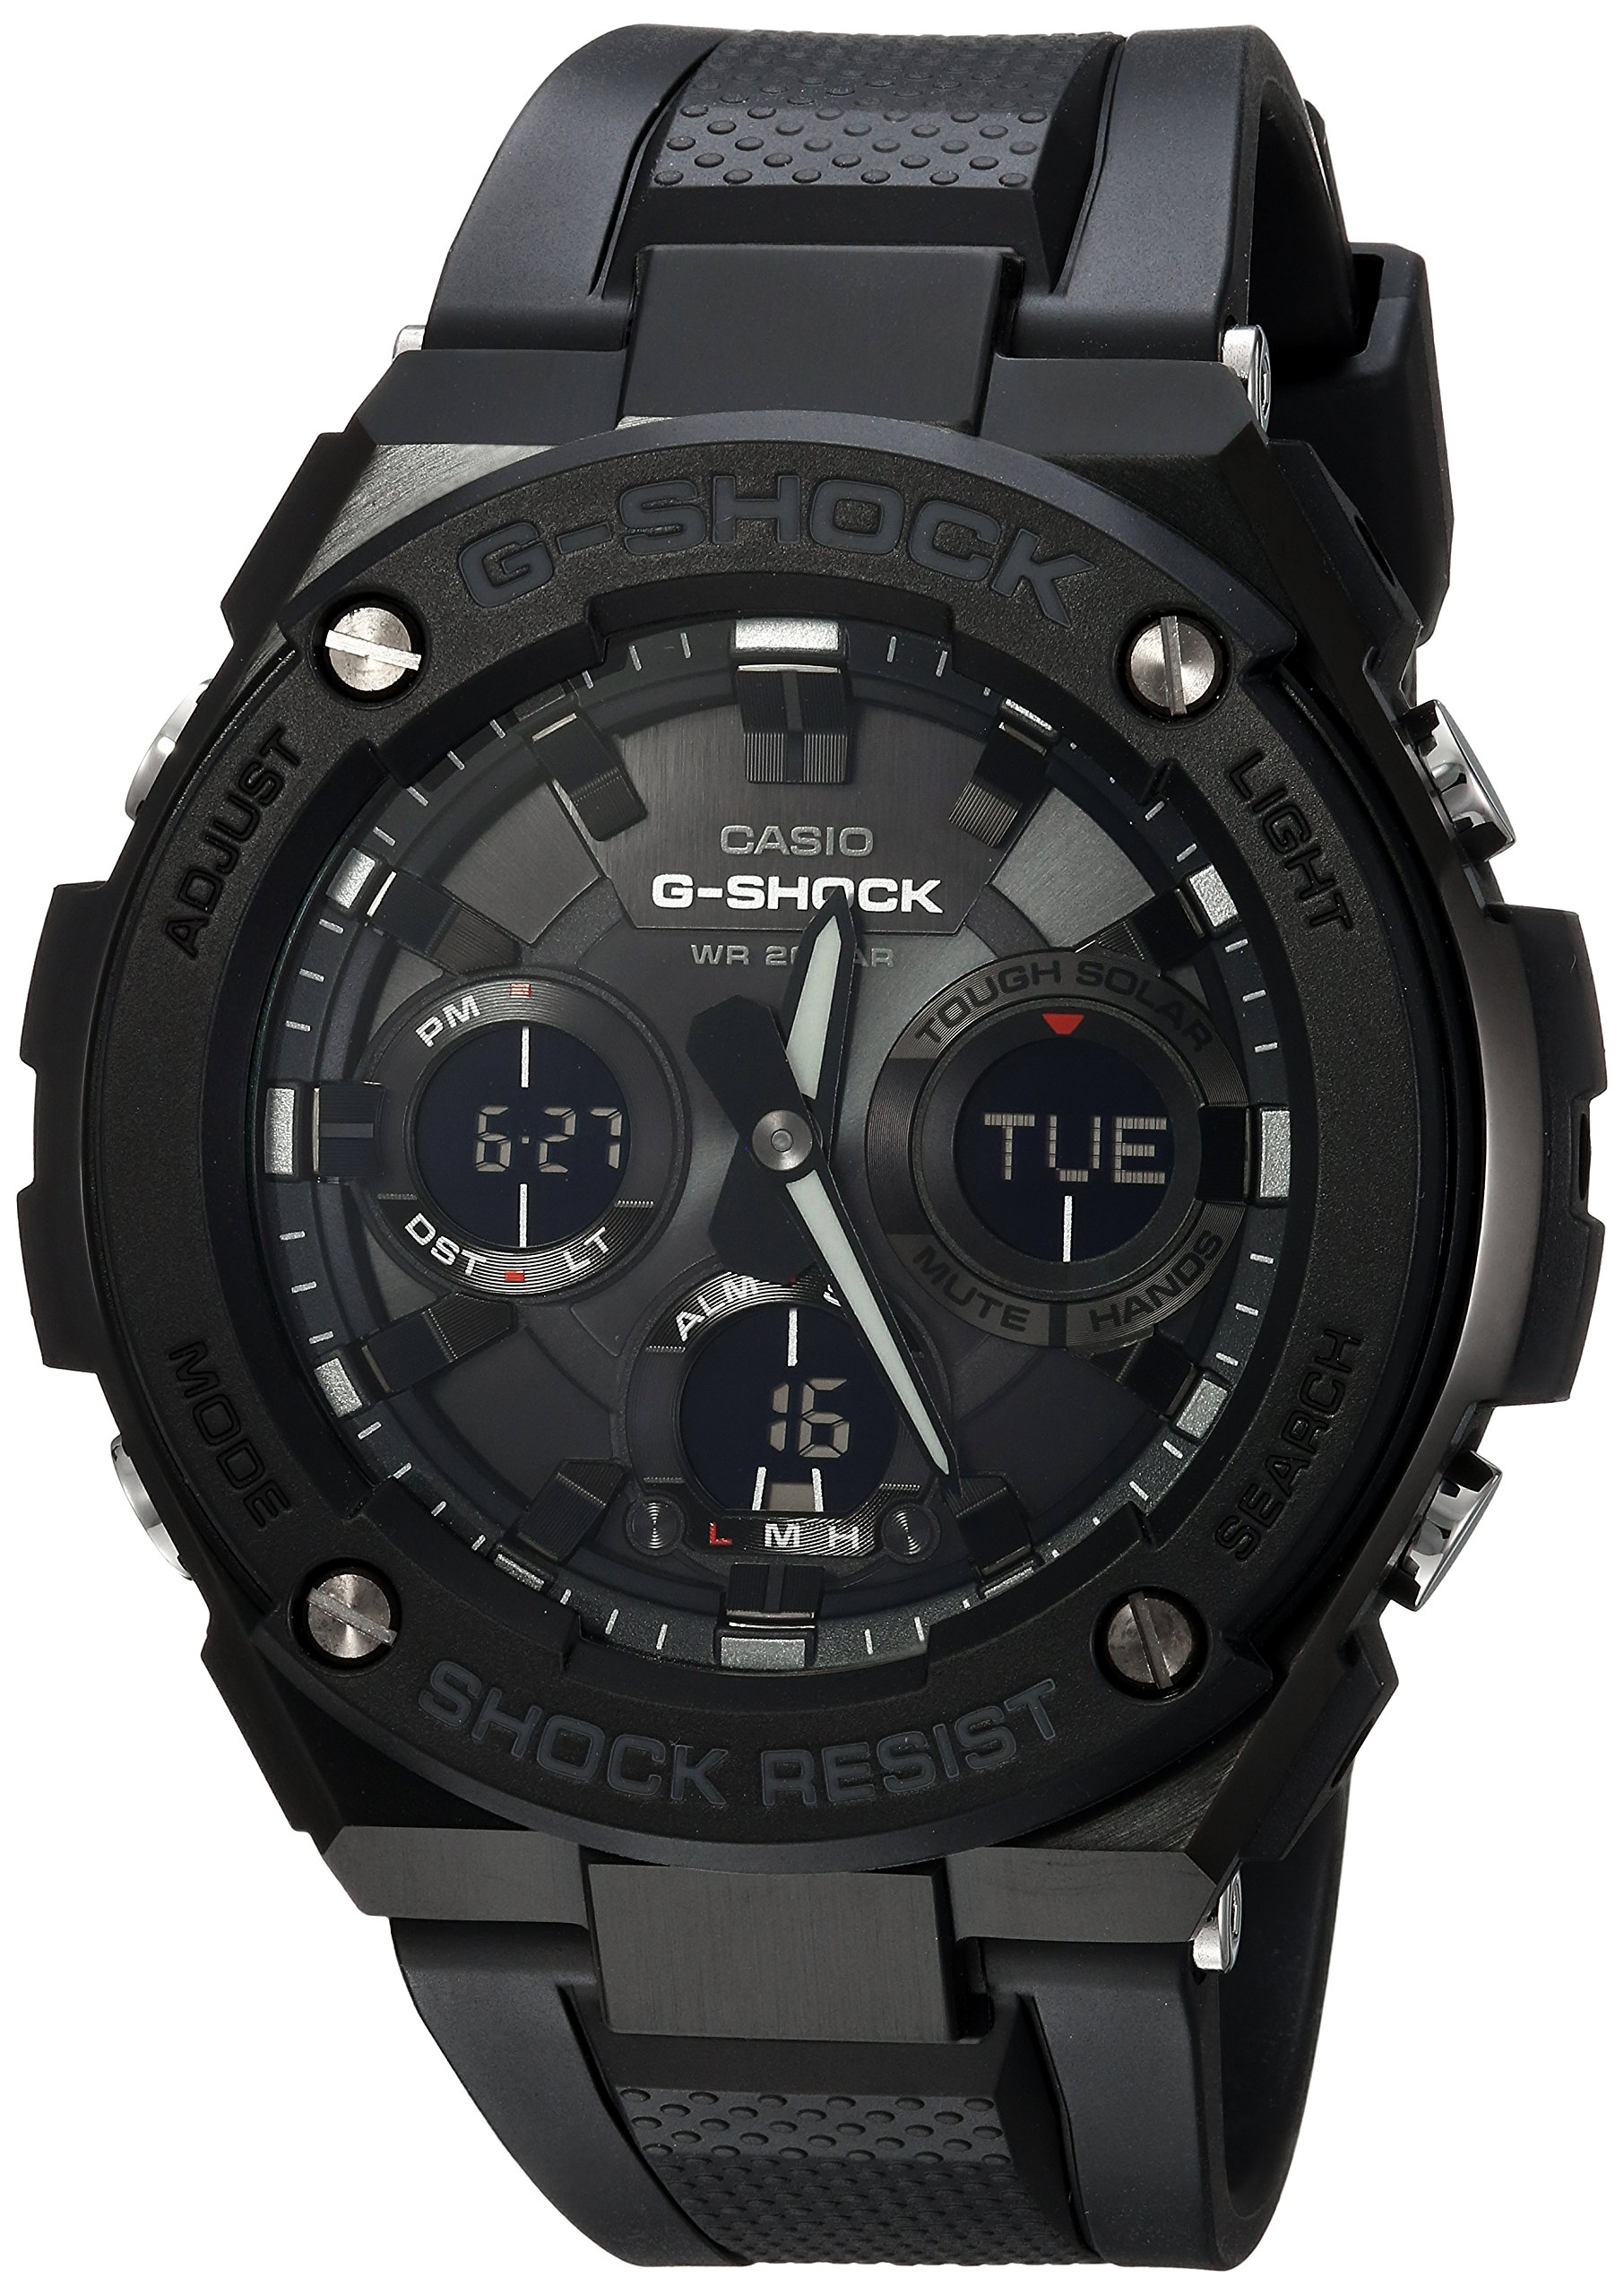 Casio Men's G Shock Stainless Steel Quartz Watch with Resin Strap, Black, 27 (Model: GST-S100G-1BCR) by Casio